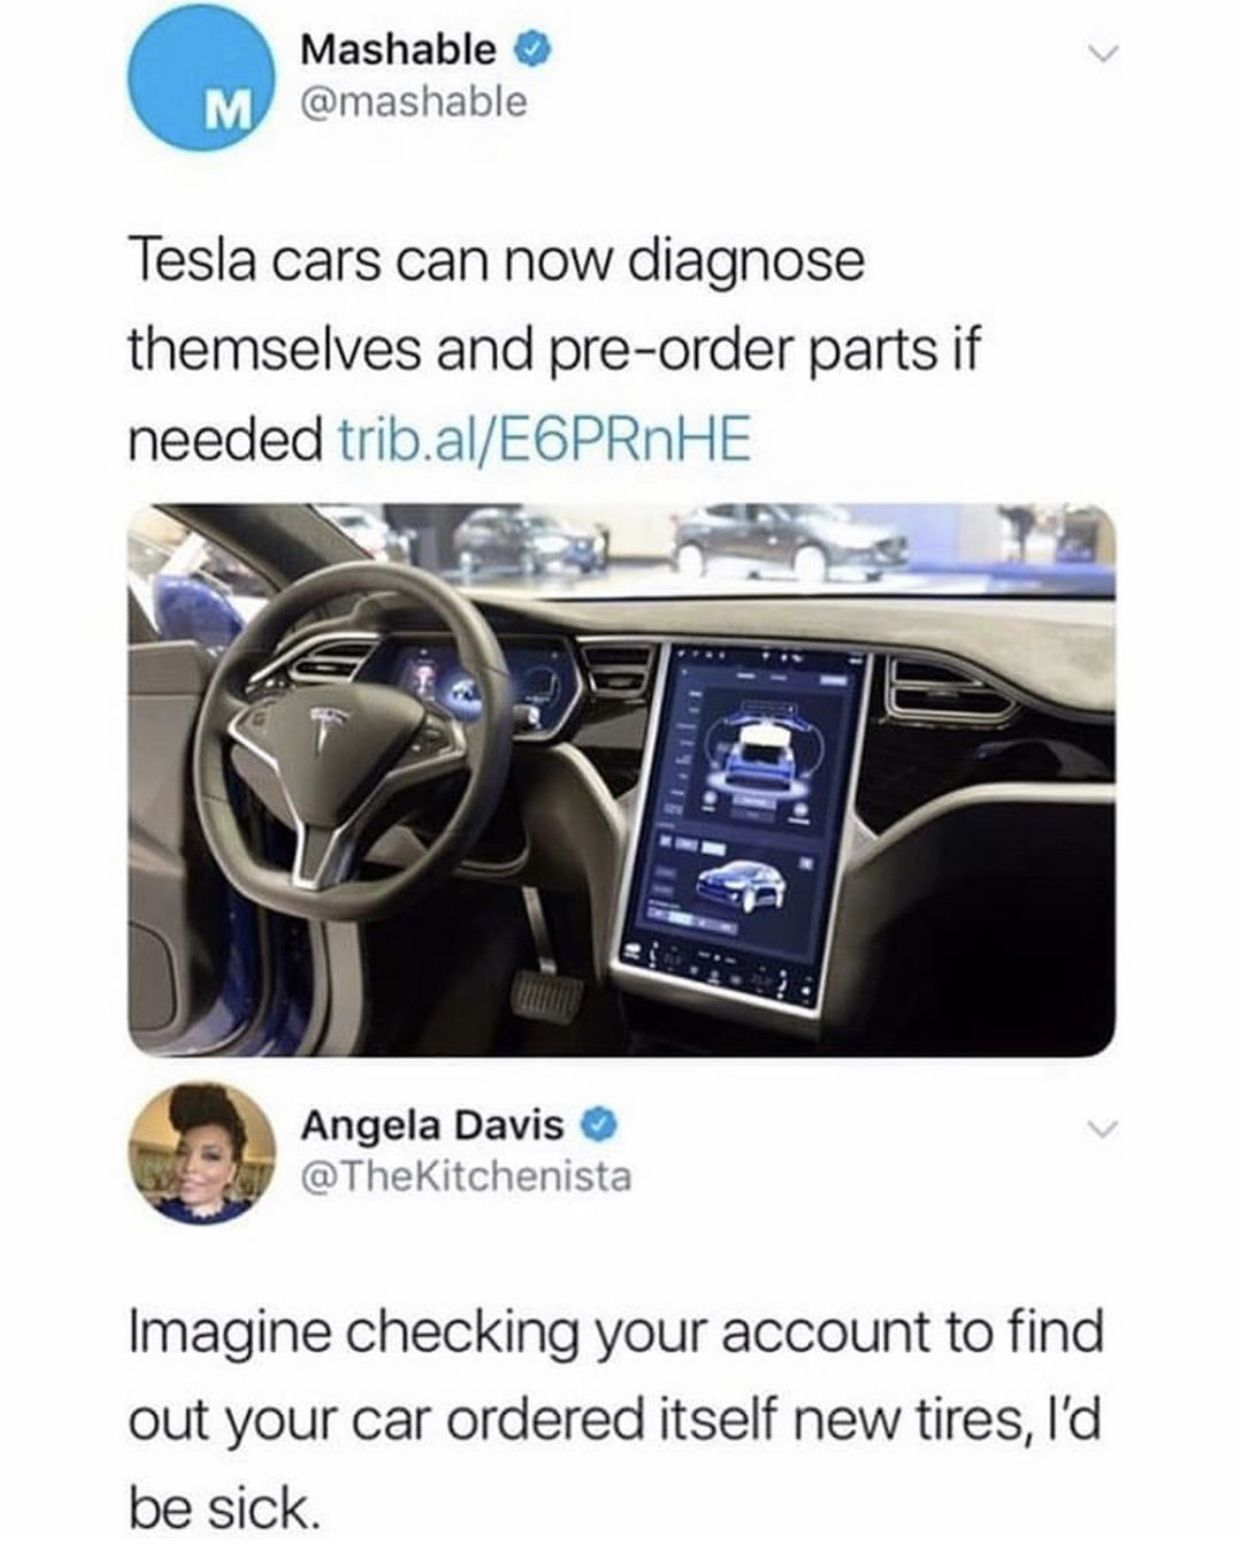 Pin by *Macie* on •: giggles :• | Internet funny, Tesla ...